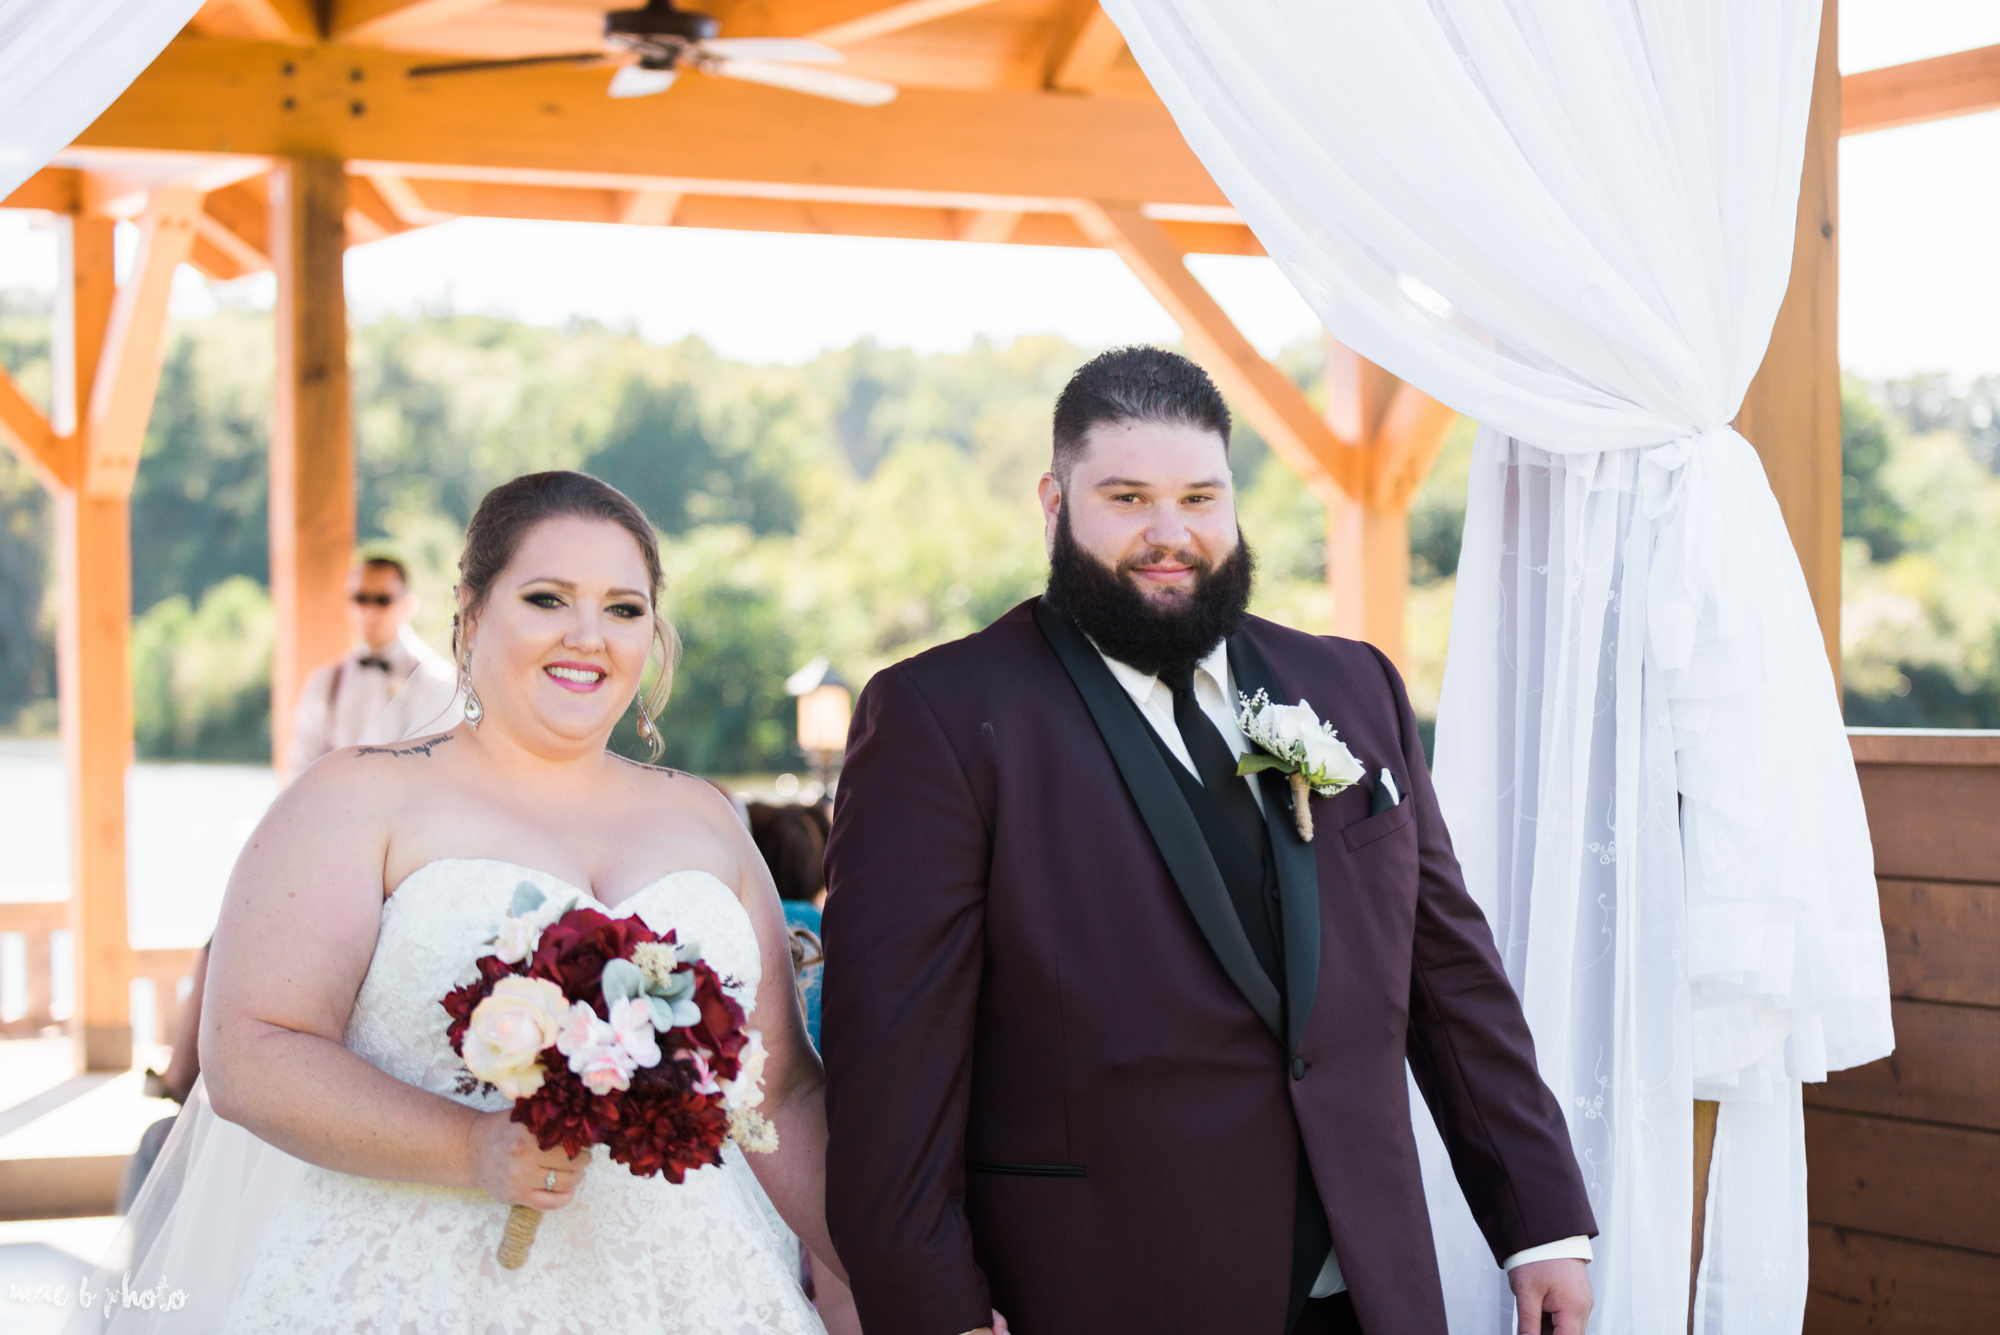 Amber & Kyle's Rustic Barn Wedding at SNPJ in Enon Valley, PA by Mae B Photo-48.jpg